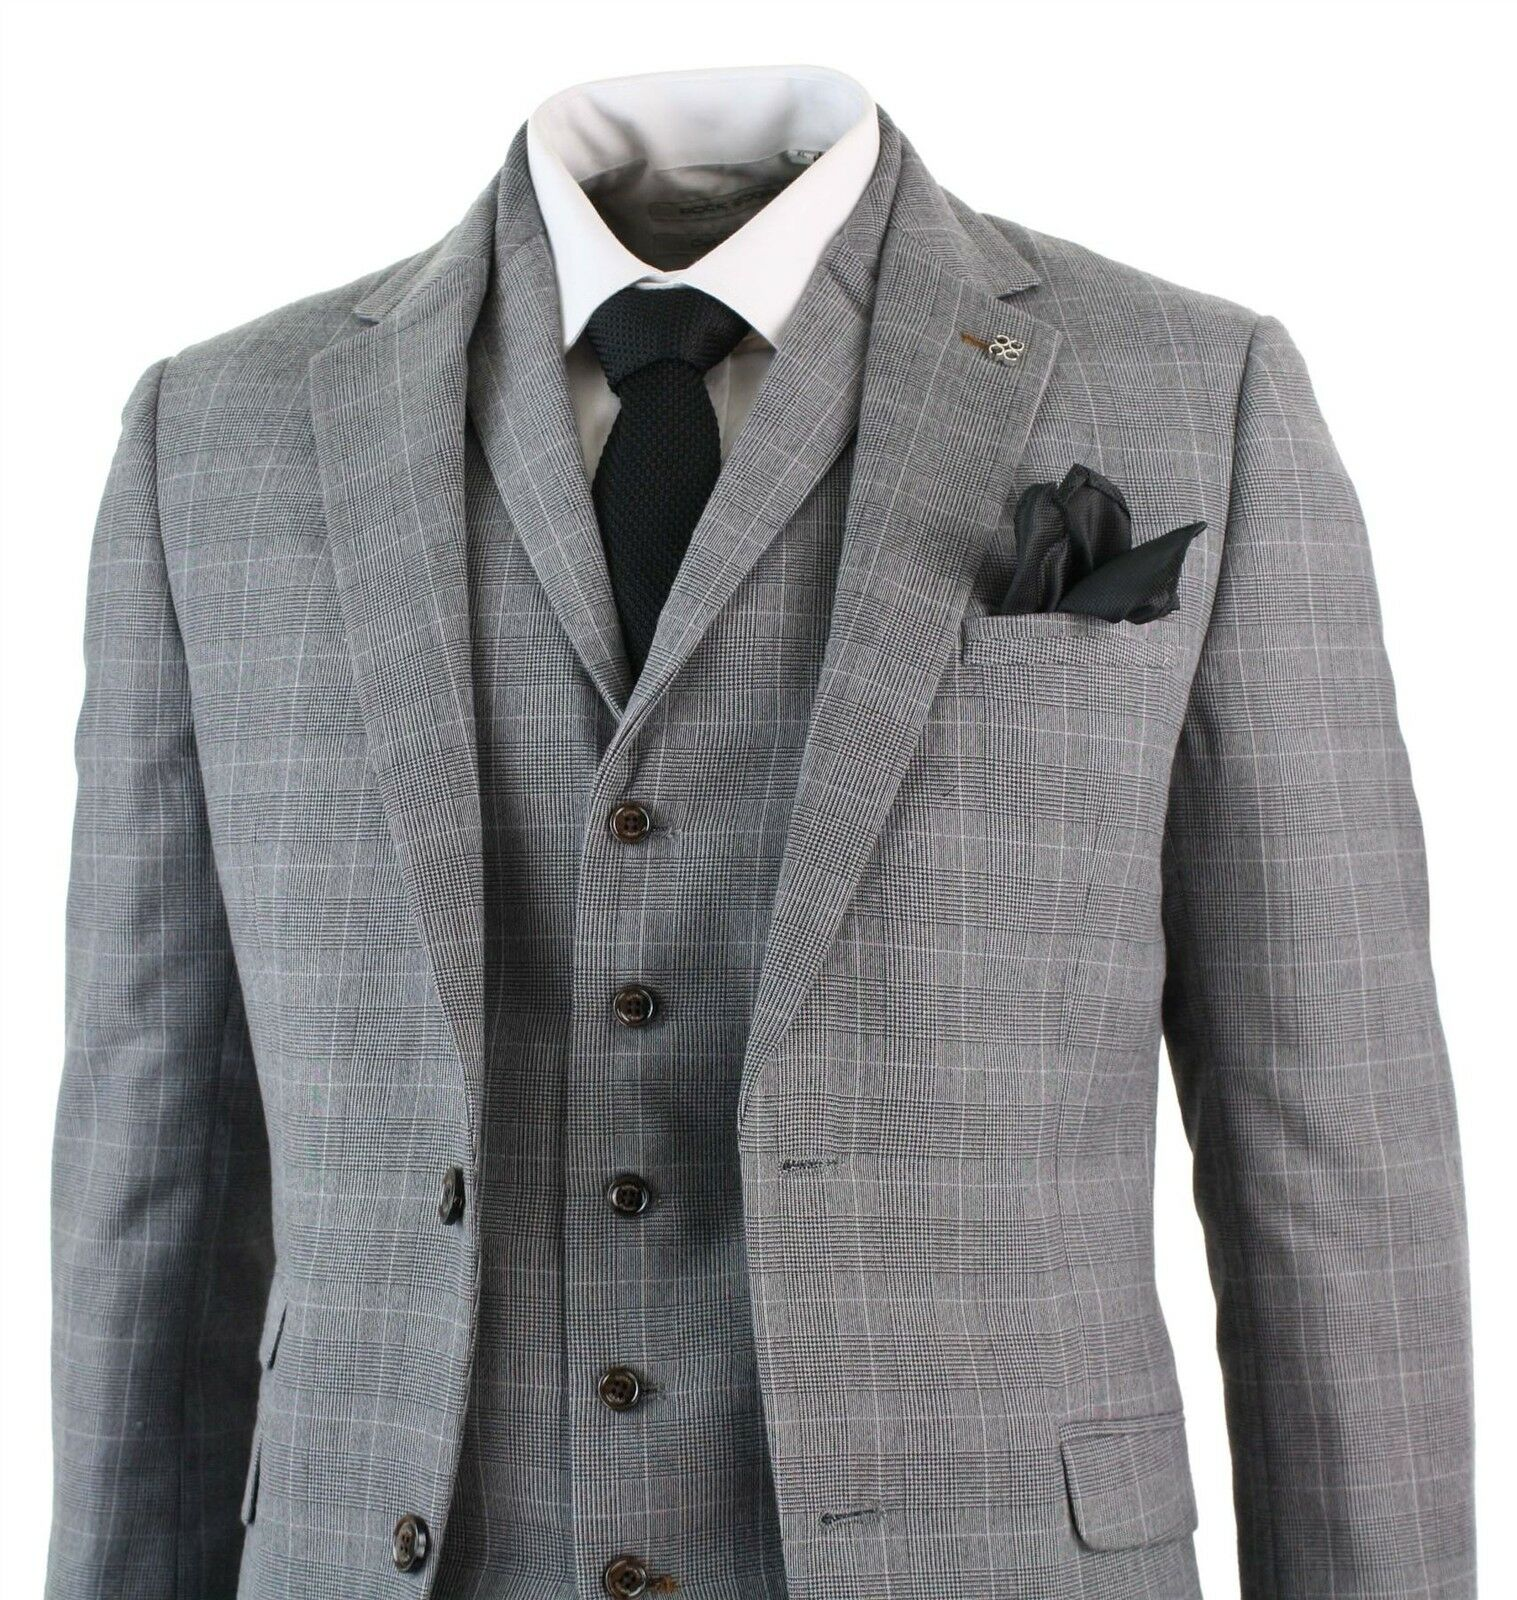 Men's Suits at Macy's come in all styles and sizes. Shop Men's Suits and get free shipping w/minimum purchase! Macy's Presents: The Edit- A curated mix of fashion and inspiration Check It Out. BAR III Light Gray Chambray Slim-Fit Jacket, Created for Macy's.